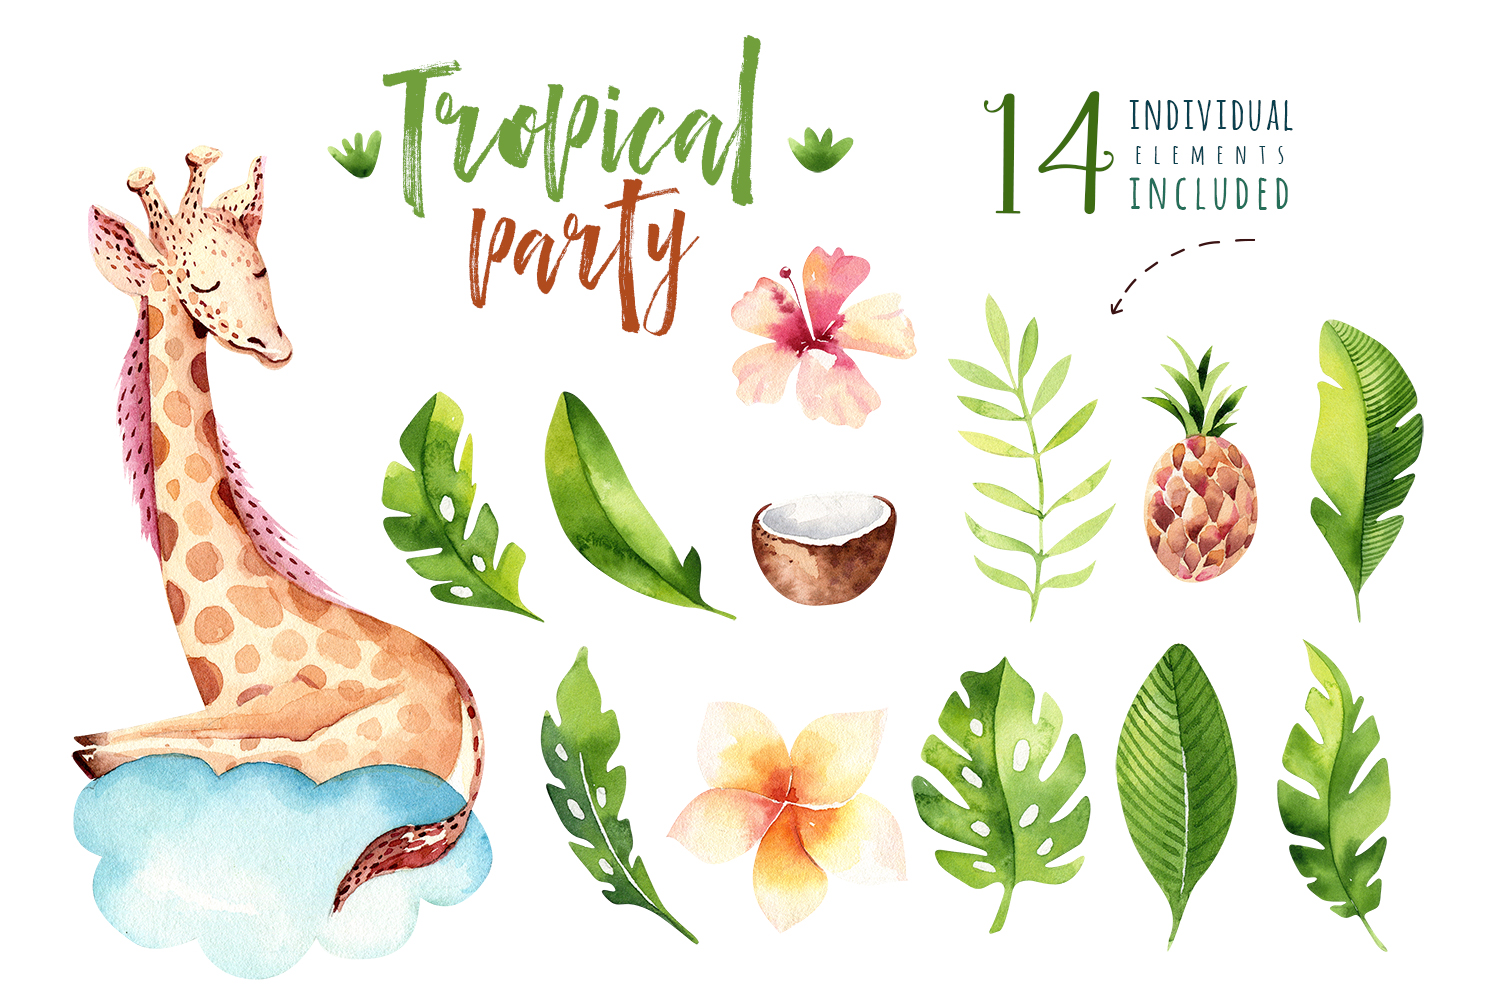 Giraffe collection. Tropical party example image 3